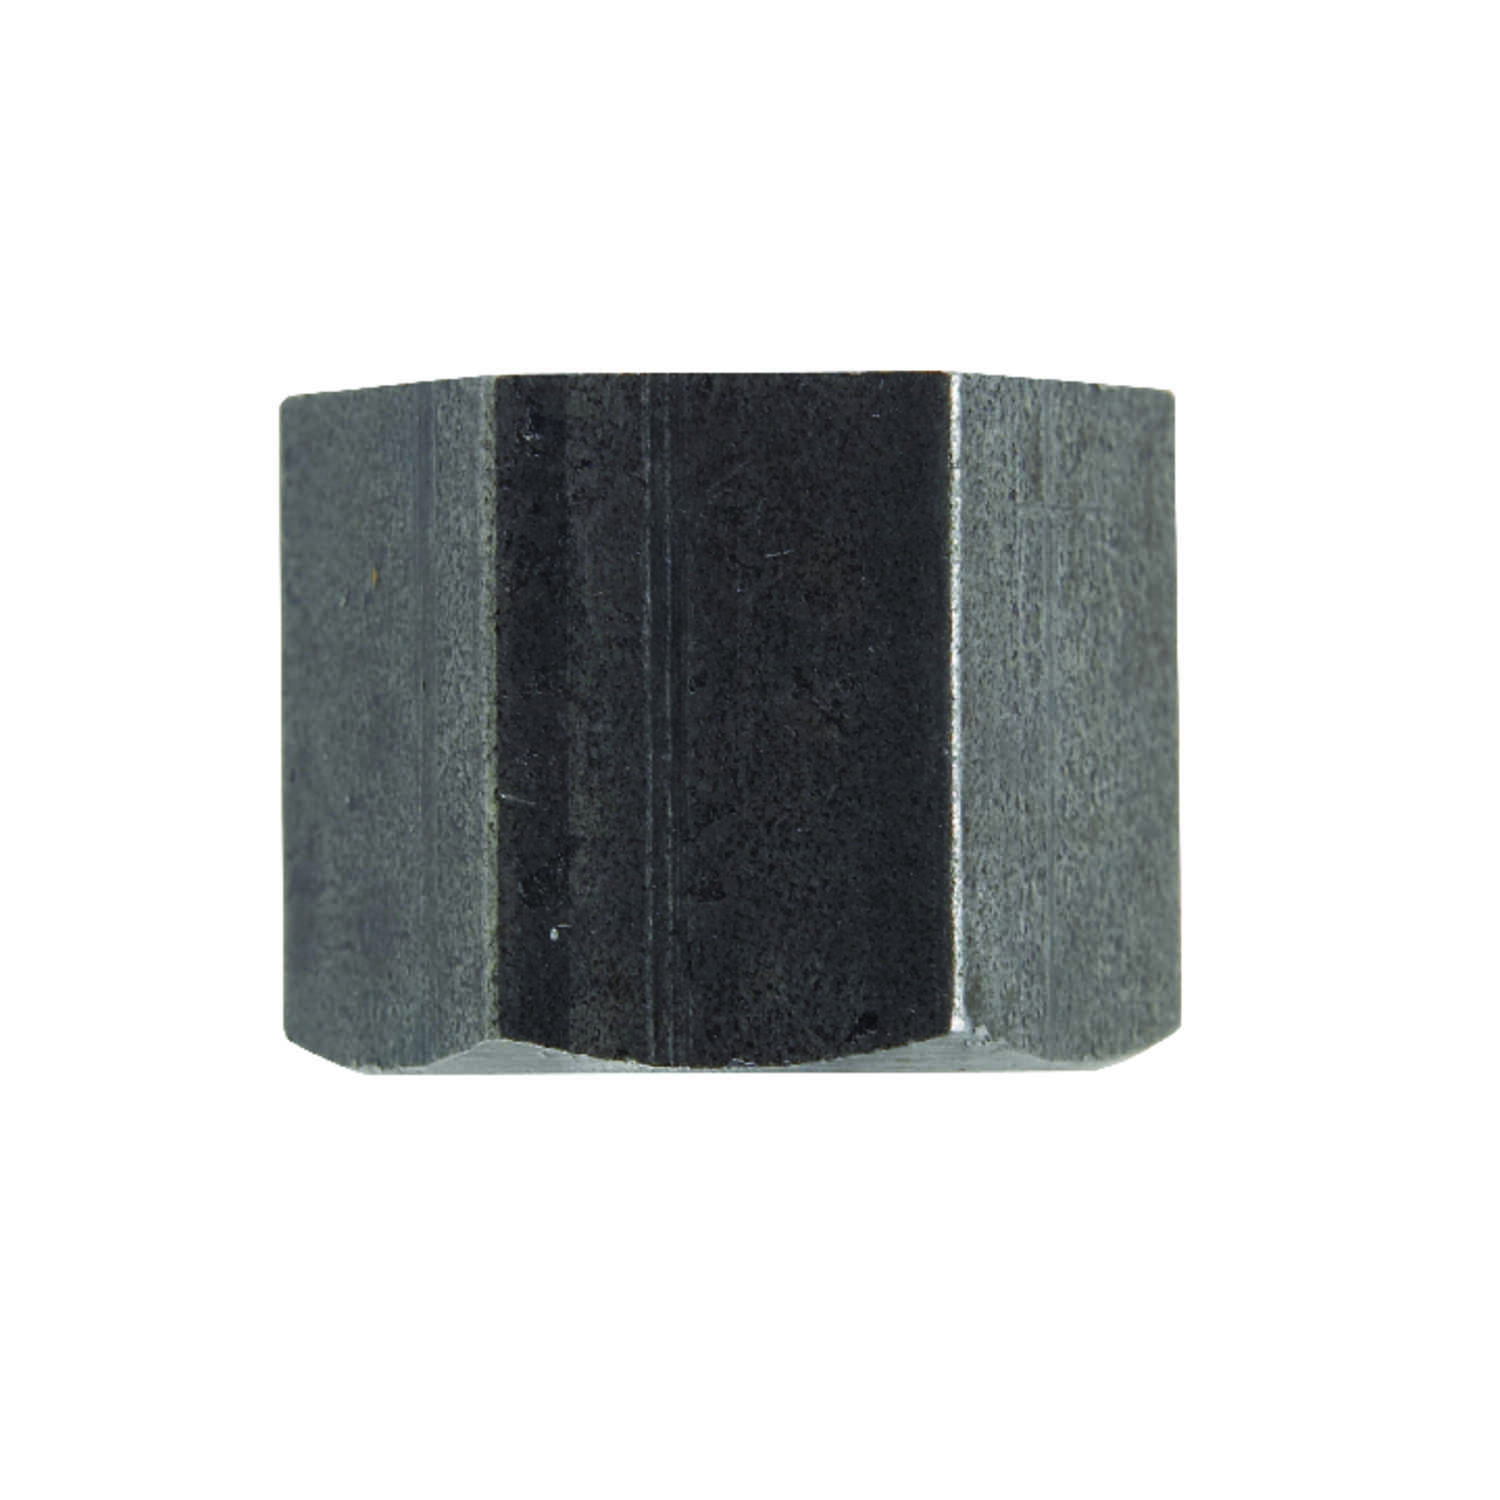 Billco  1/4 in. FPT  Black  Steel  Hex Pipe Cap